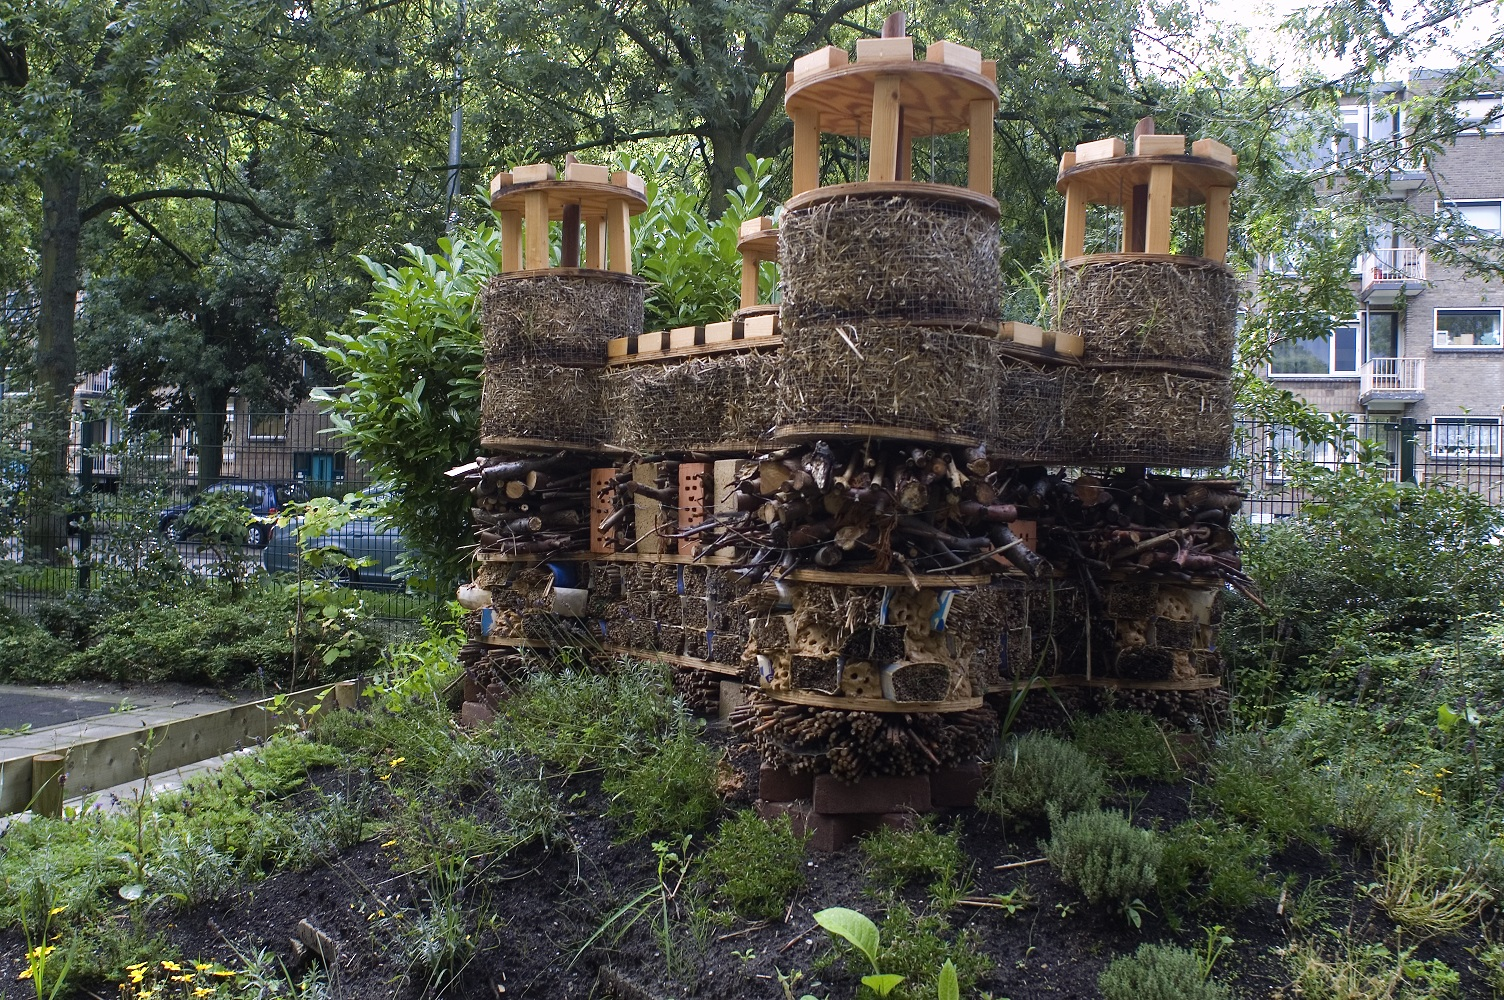 Leerlingen tijdens het bouwen: can we enter the castle? I wish I am a butterfly so I can enter the castle, I wish I am a rocket so I can fly into the castle. I think there is a hedgehog inside, I can feel it, and I think its blue colored…